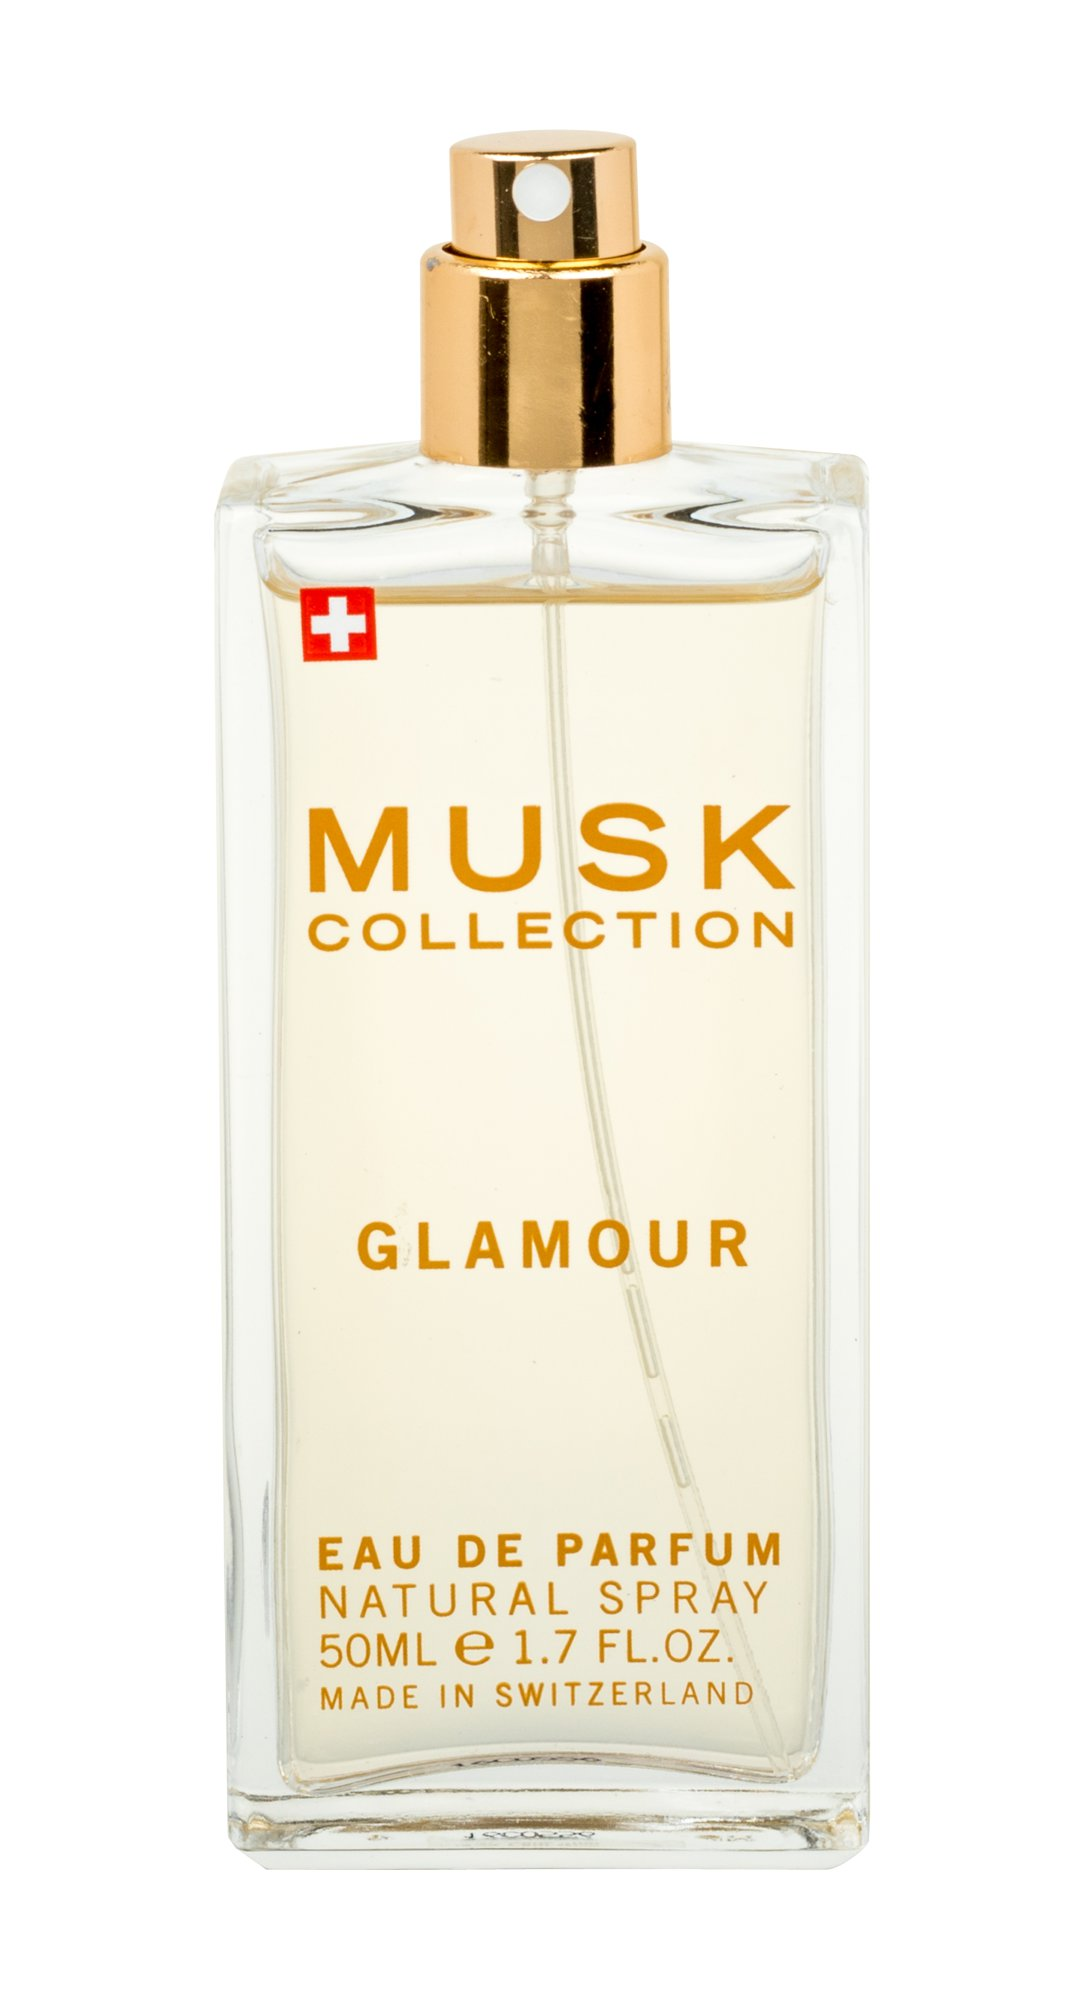 MUSK Collection Glamour, edp 50ml